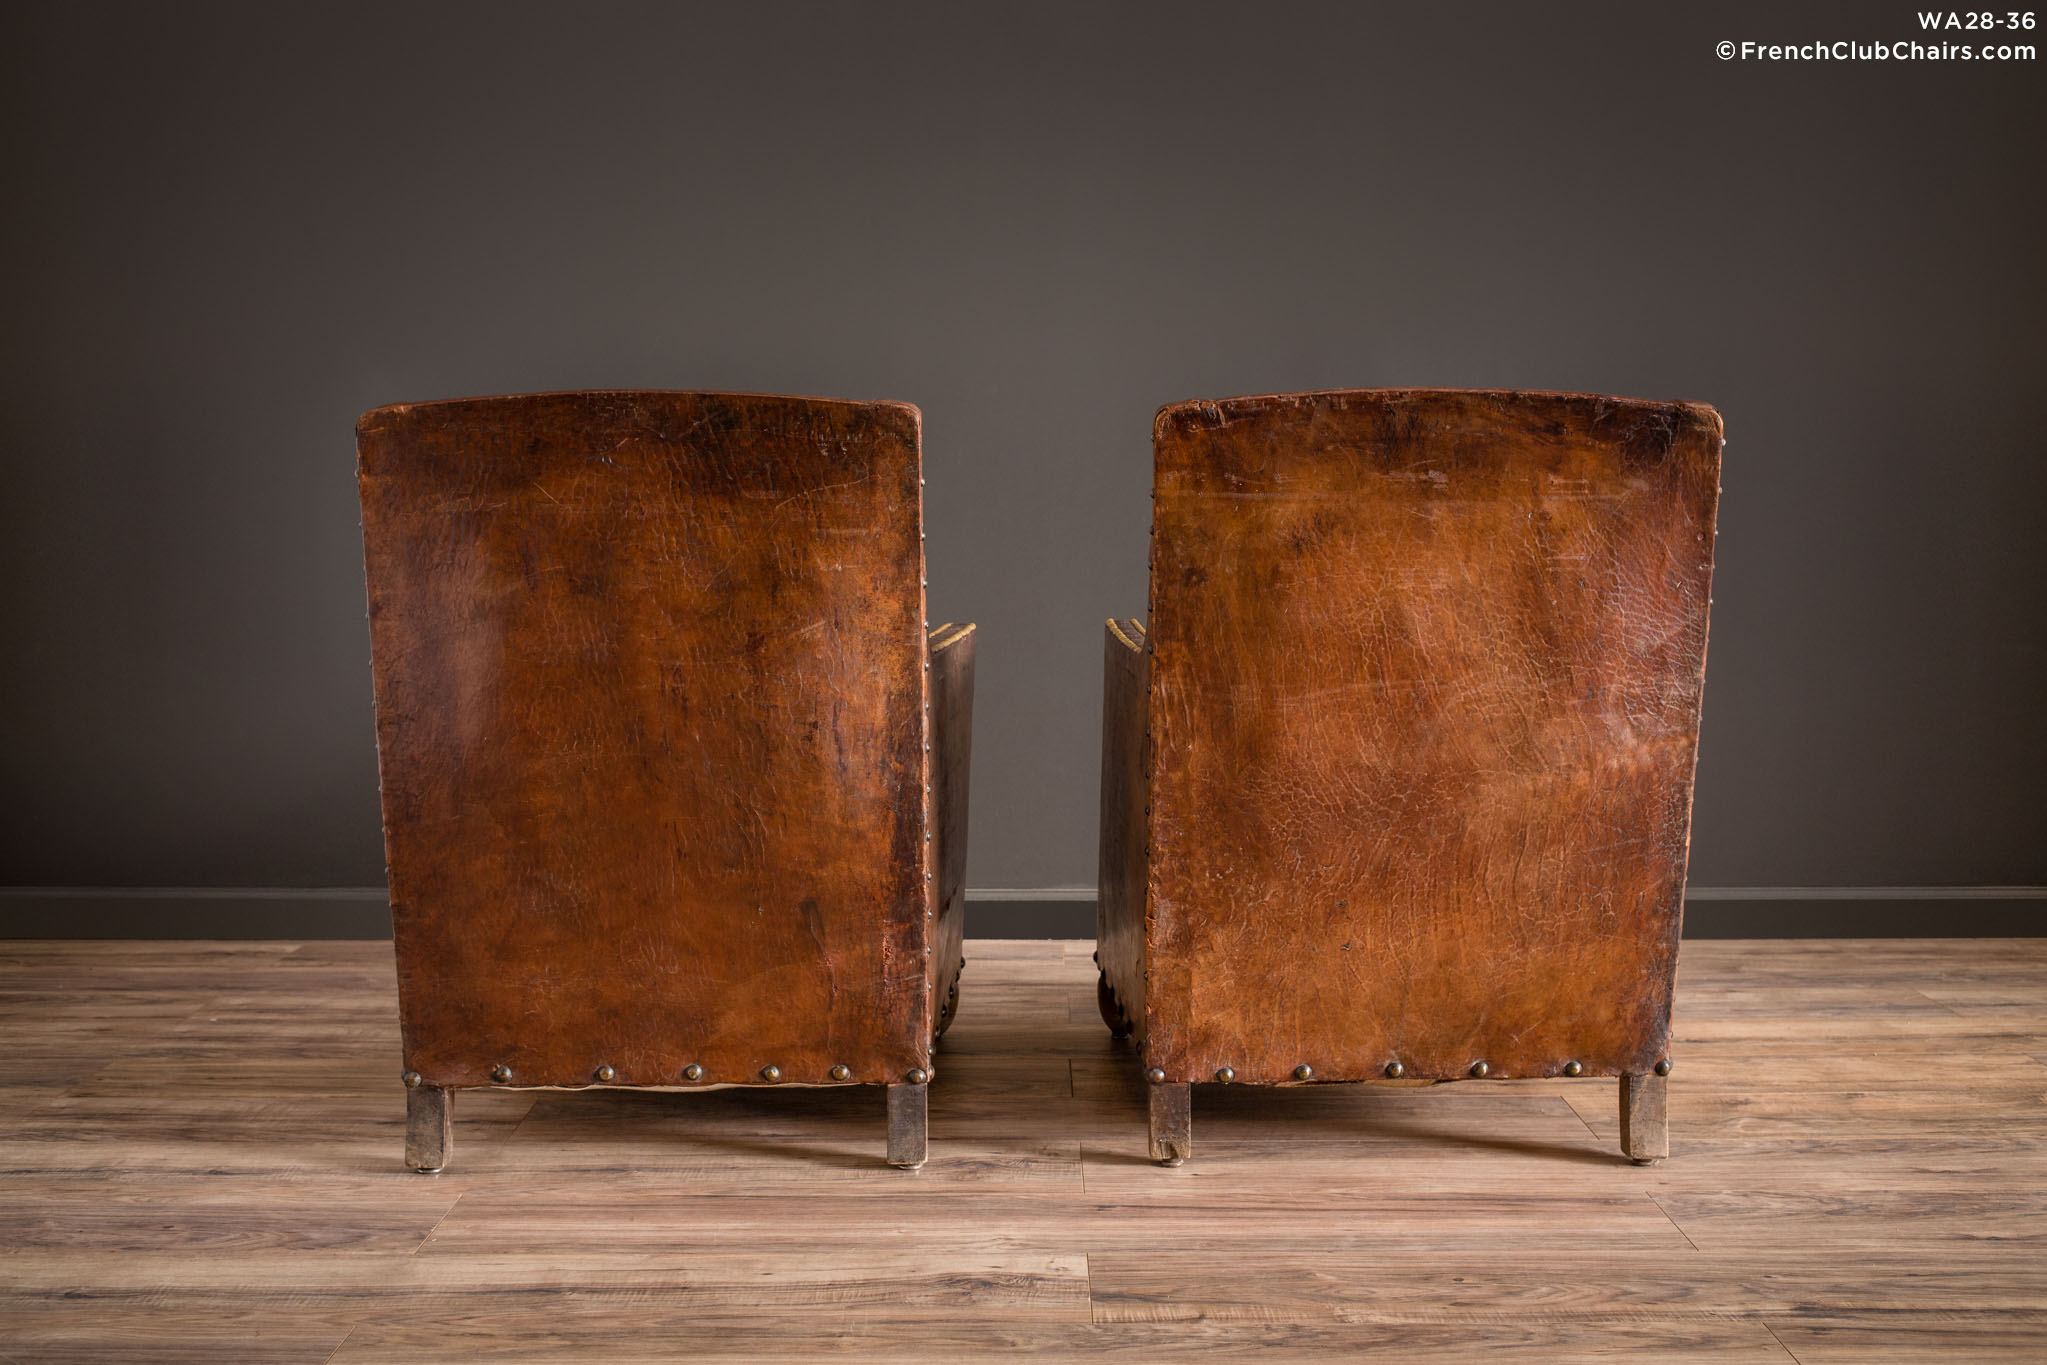 WA_28-36_Nation_Nailed_Dark_Pair_R_2BK1-williams-antiks-leather-french-club-chair-wa_fcccom